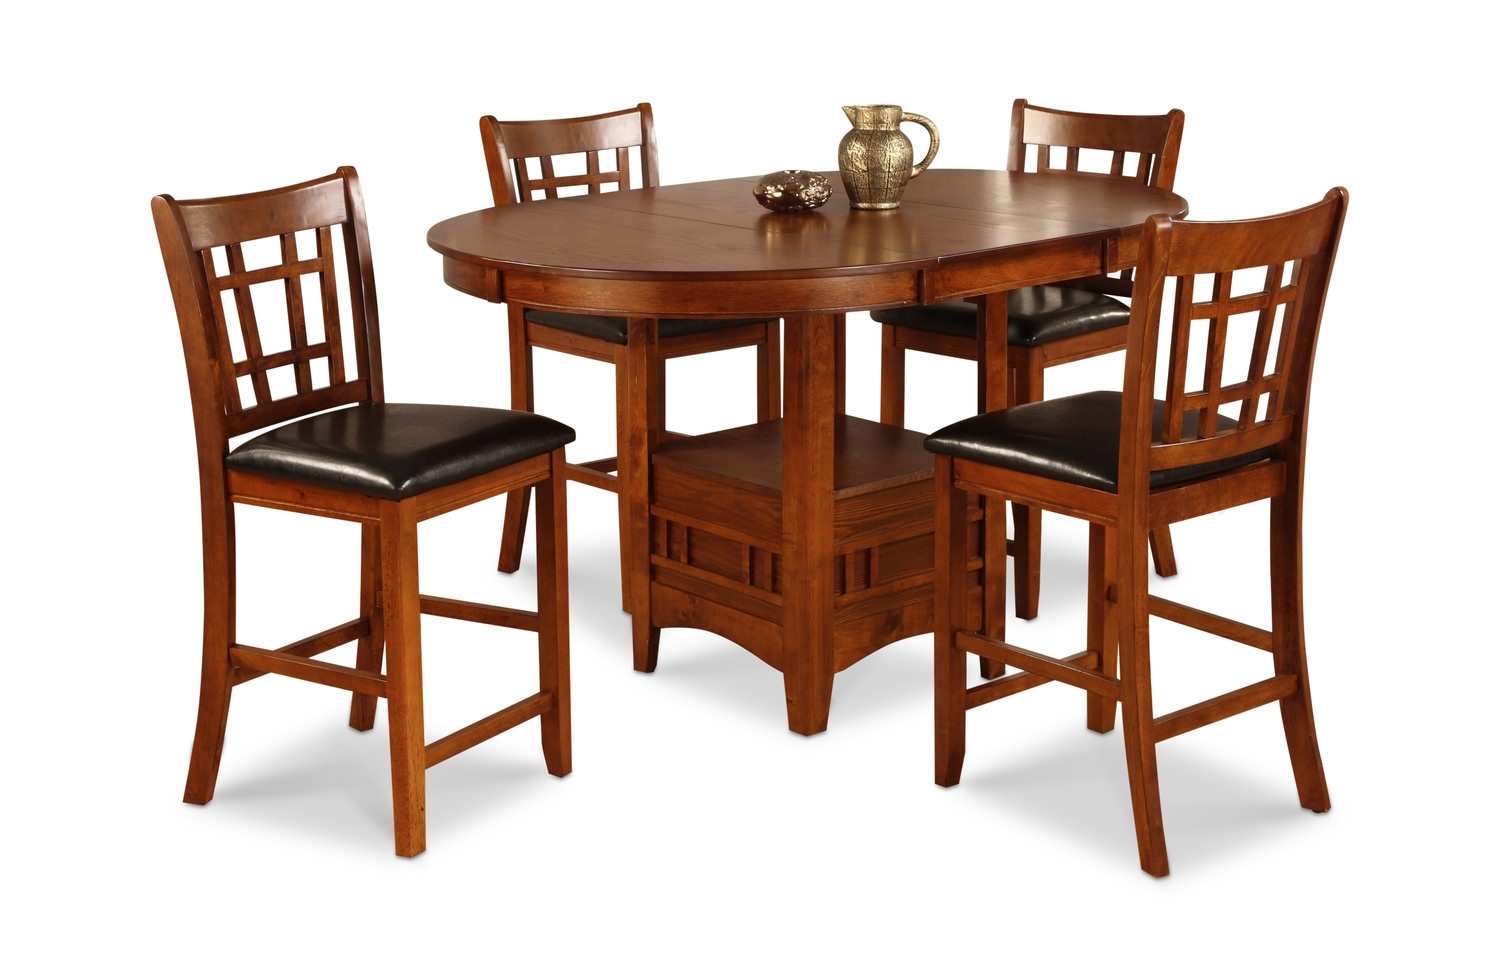 Chapleau Ii Arm Chairs Within Most Recent Dining Sets – Kitchen & Dining Room Sets – Hom Furniture (#7 of 20)